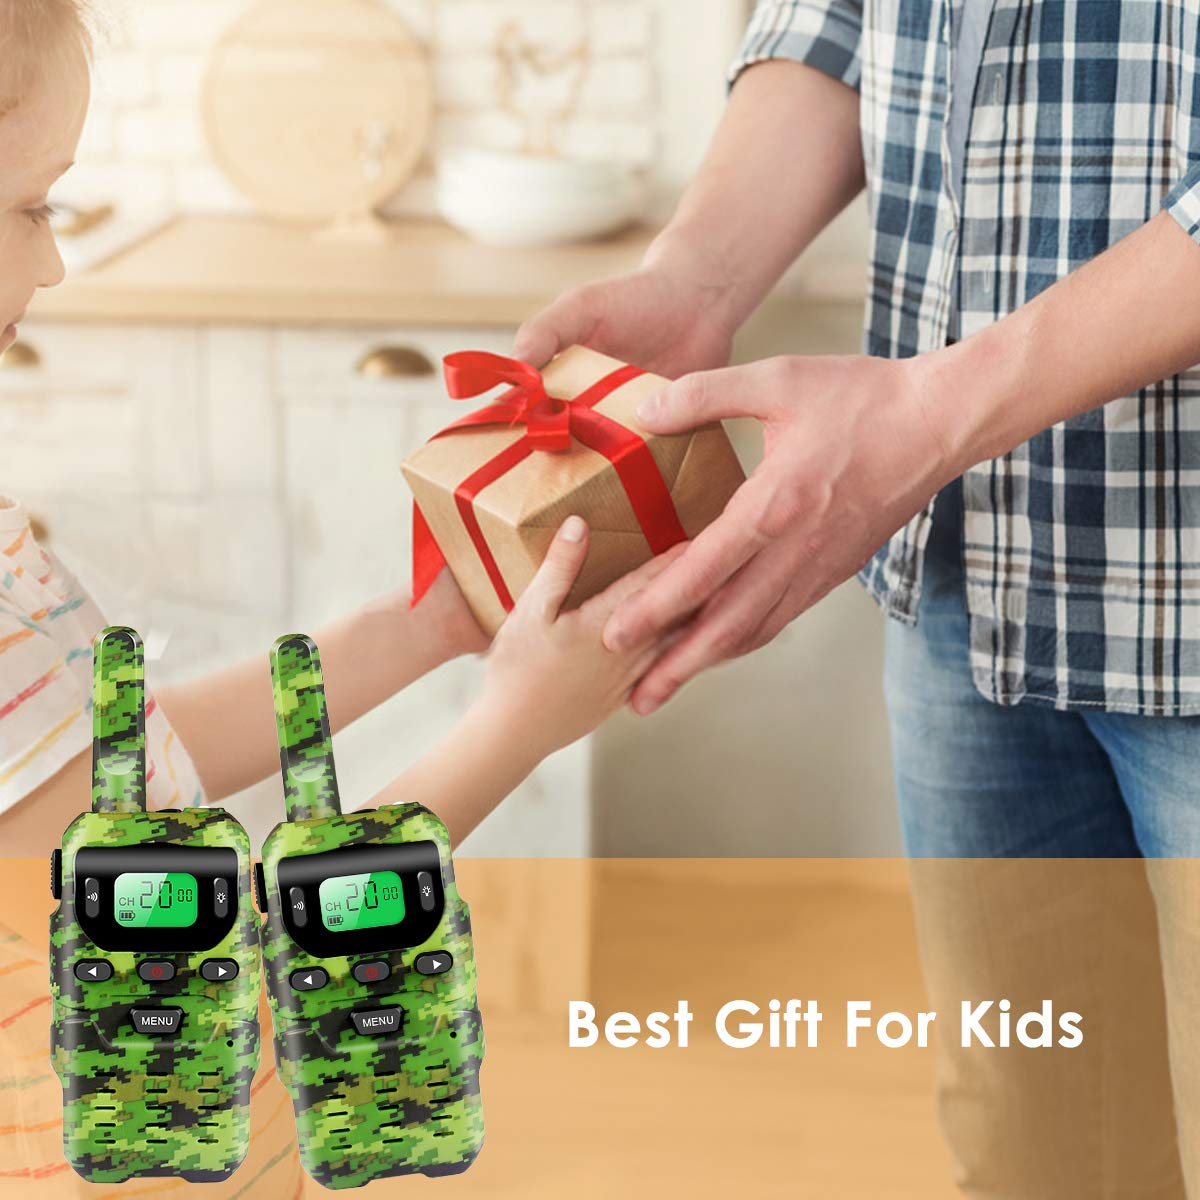 UOKOO Walkie Talkies for Kids, Toys for 3-12 Year Old Boys 22 Channel 3 Mile Long Range Kids Toys and Kids Walkie Talkies, and Top Toys for for 3 4 5 6 7 8 9 Year Old Boy and Girls by UOKOO (Image #4)